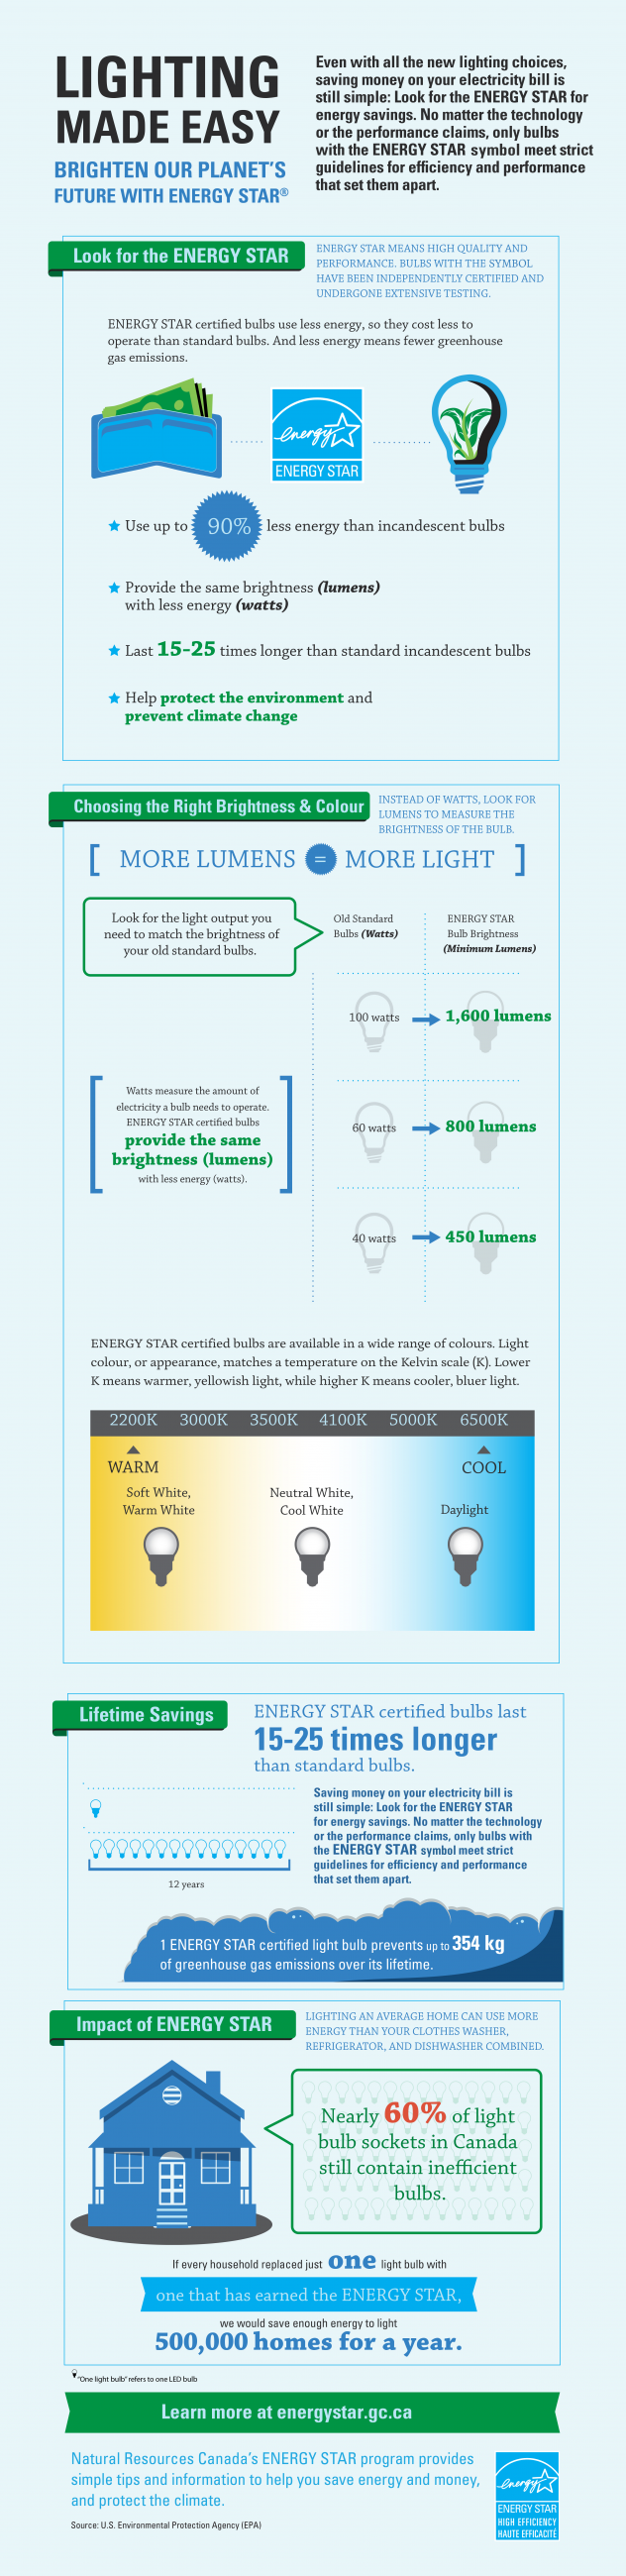 Infographic for more tips on saving energy